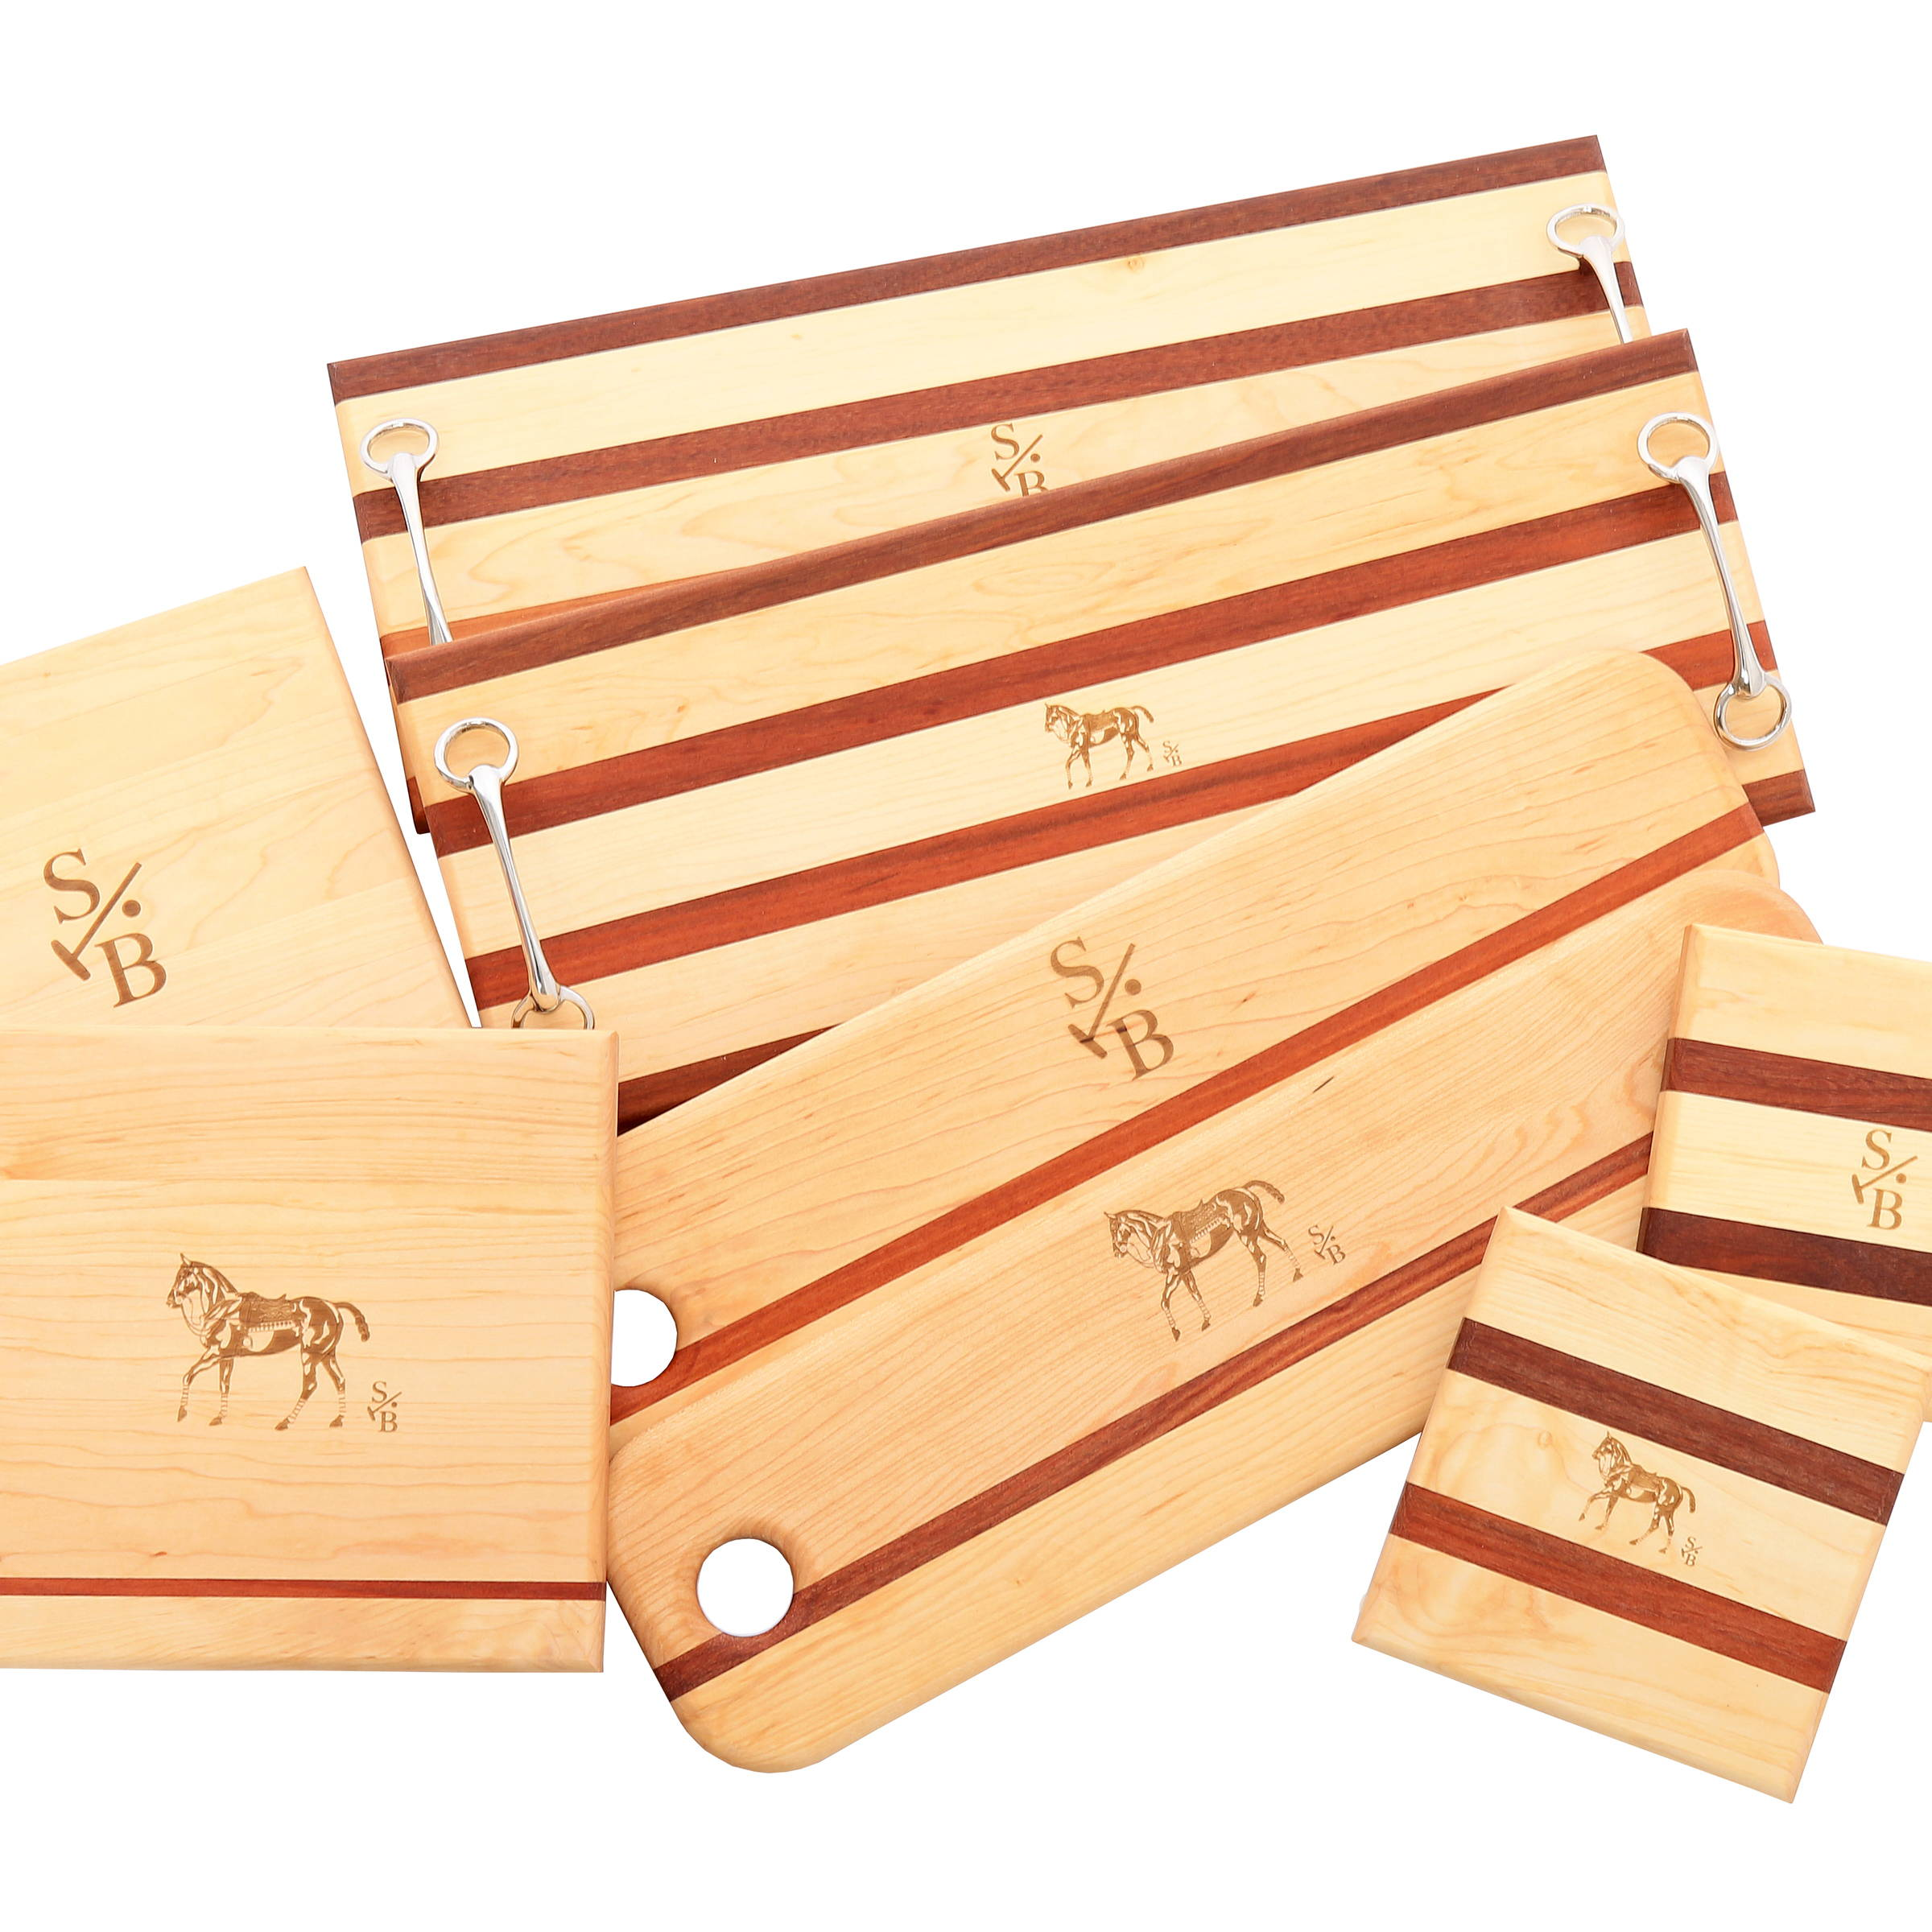 Display of Equestrian-inspired Cheese & Charcuterie Board with Stick & Ball Logo & Polo pony